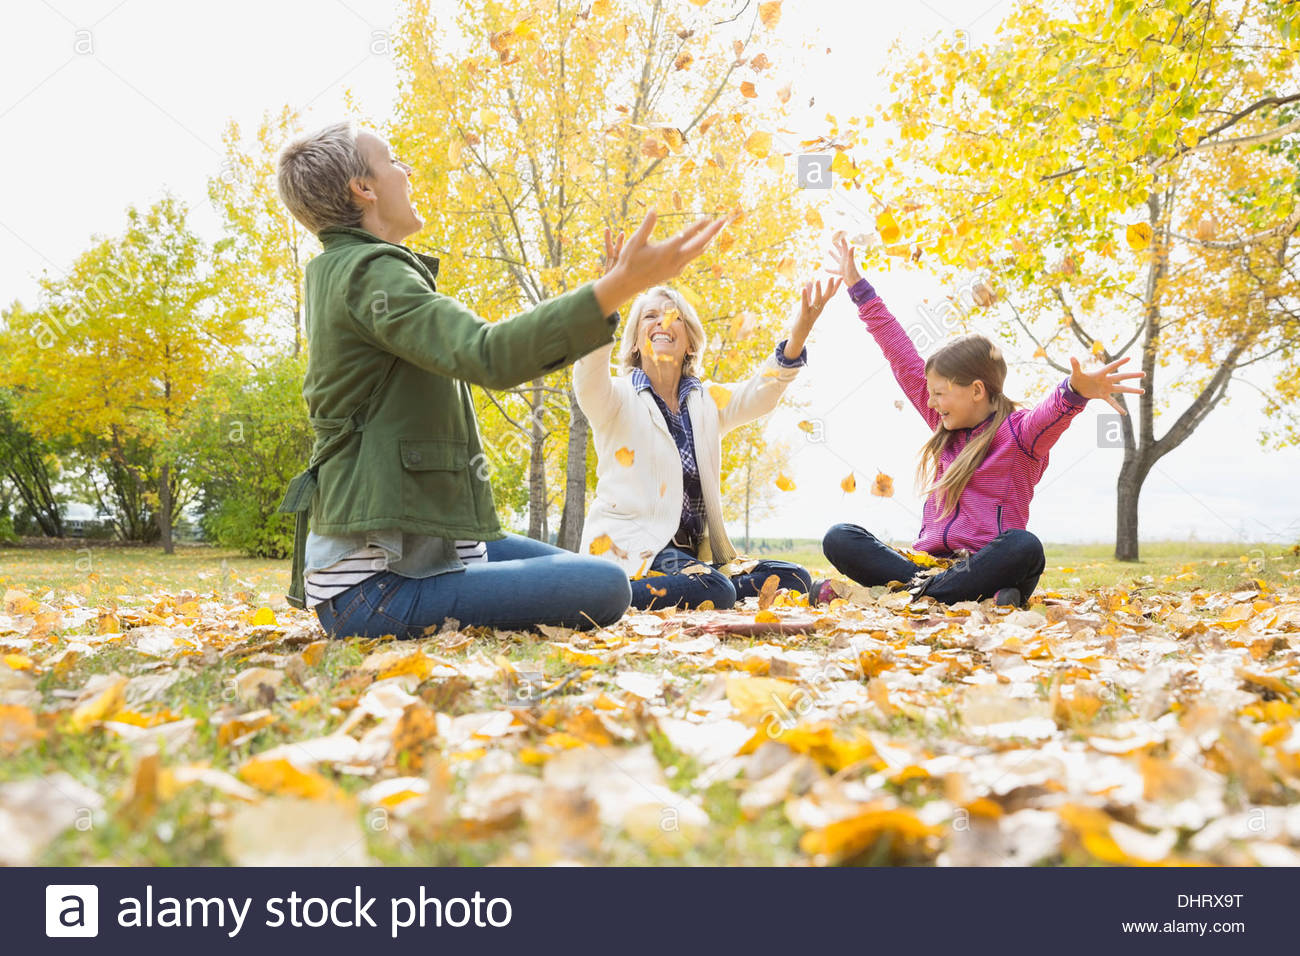 Female family members throwing autumn leaves in park Stock Photo